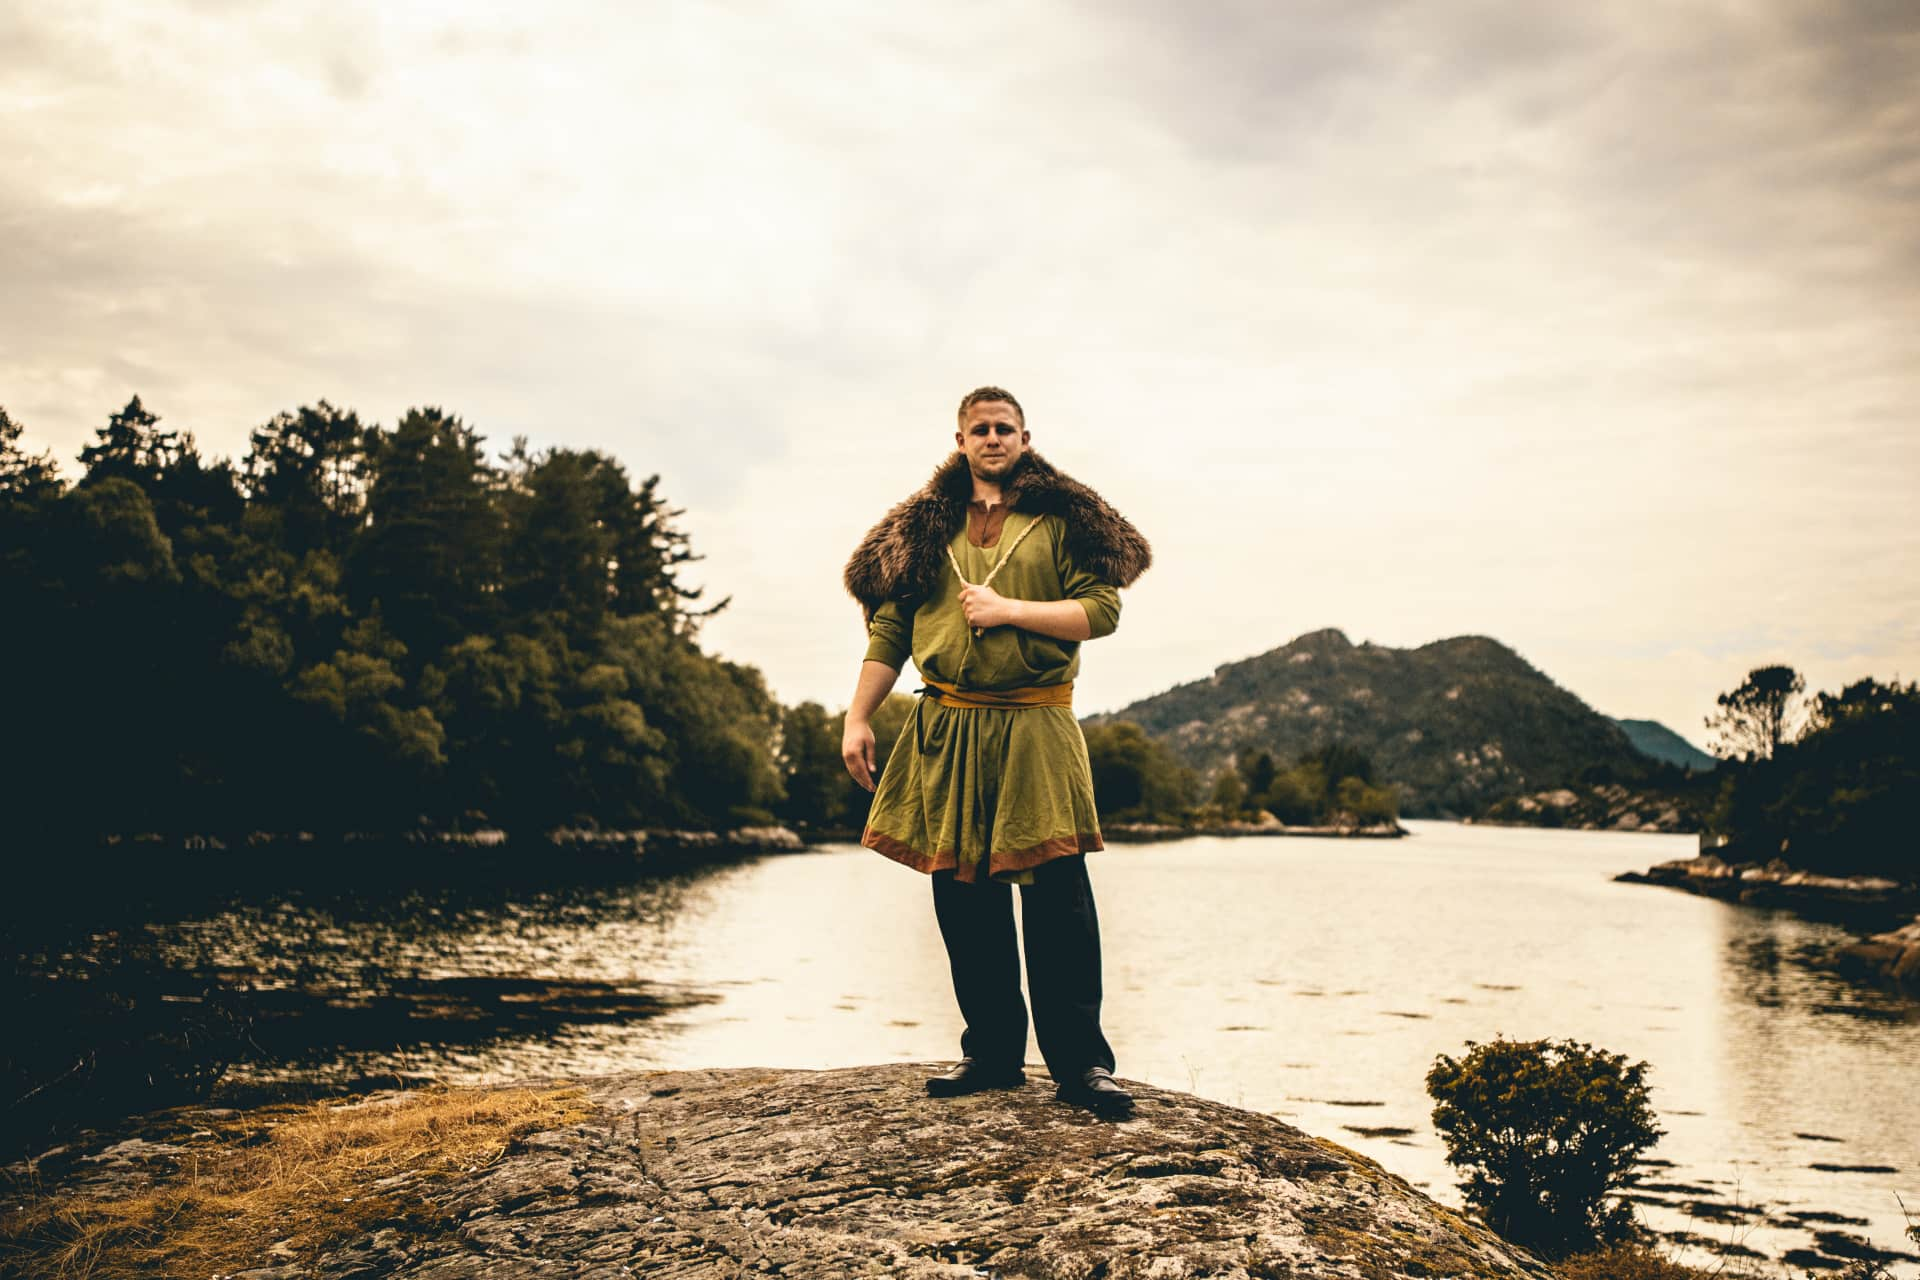 A viking dressed man standing at Gulating with the ocean as a backdrop.